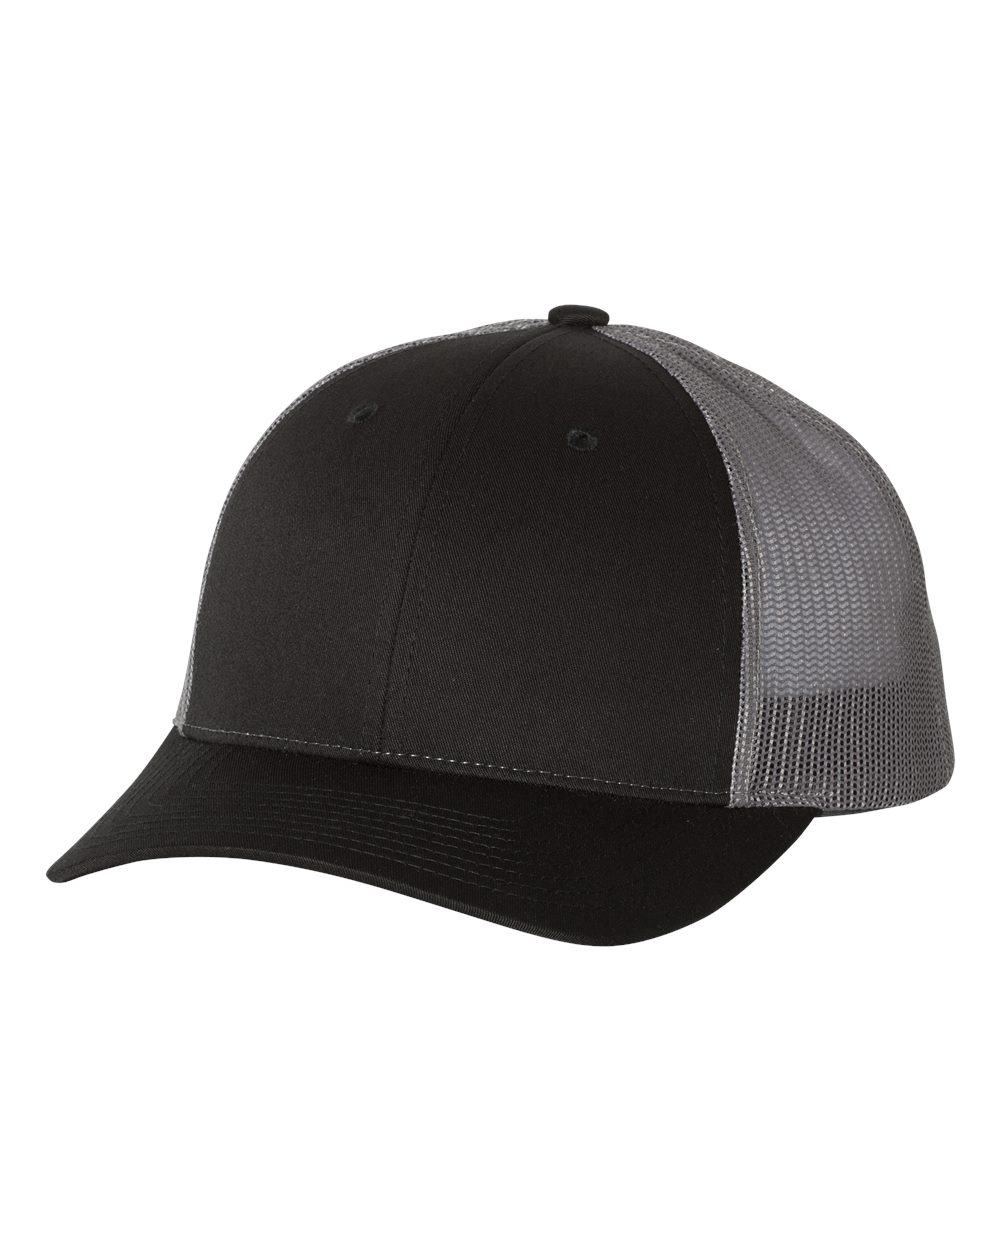 5d11e2a1592b8 Richardson 115 - Low Profile Trucker Cap  5.13 - Headwear